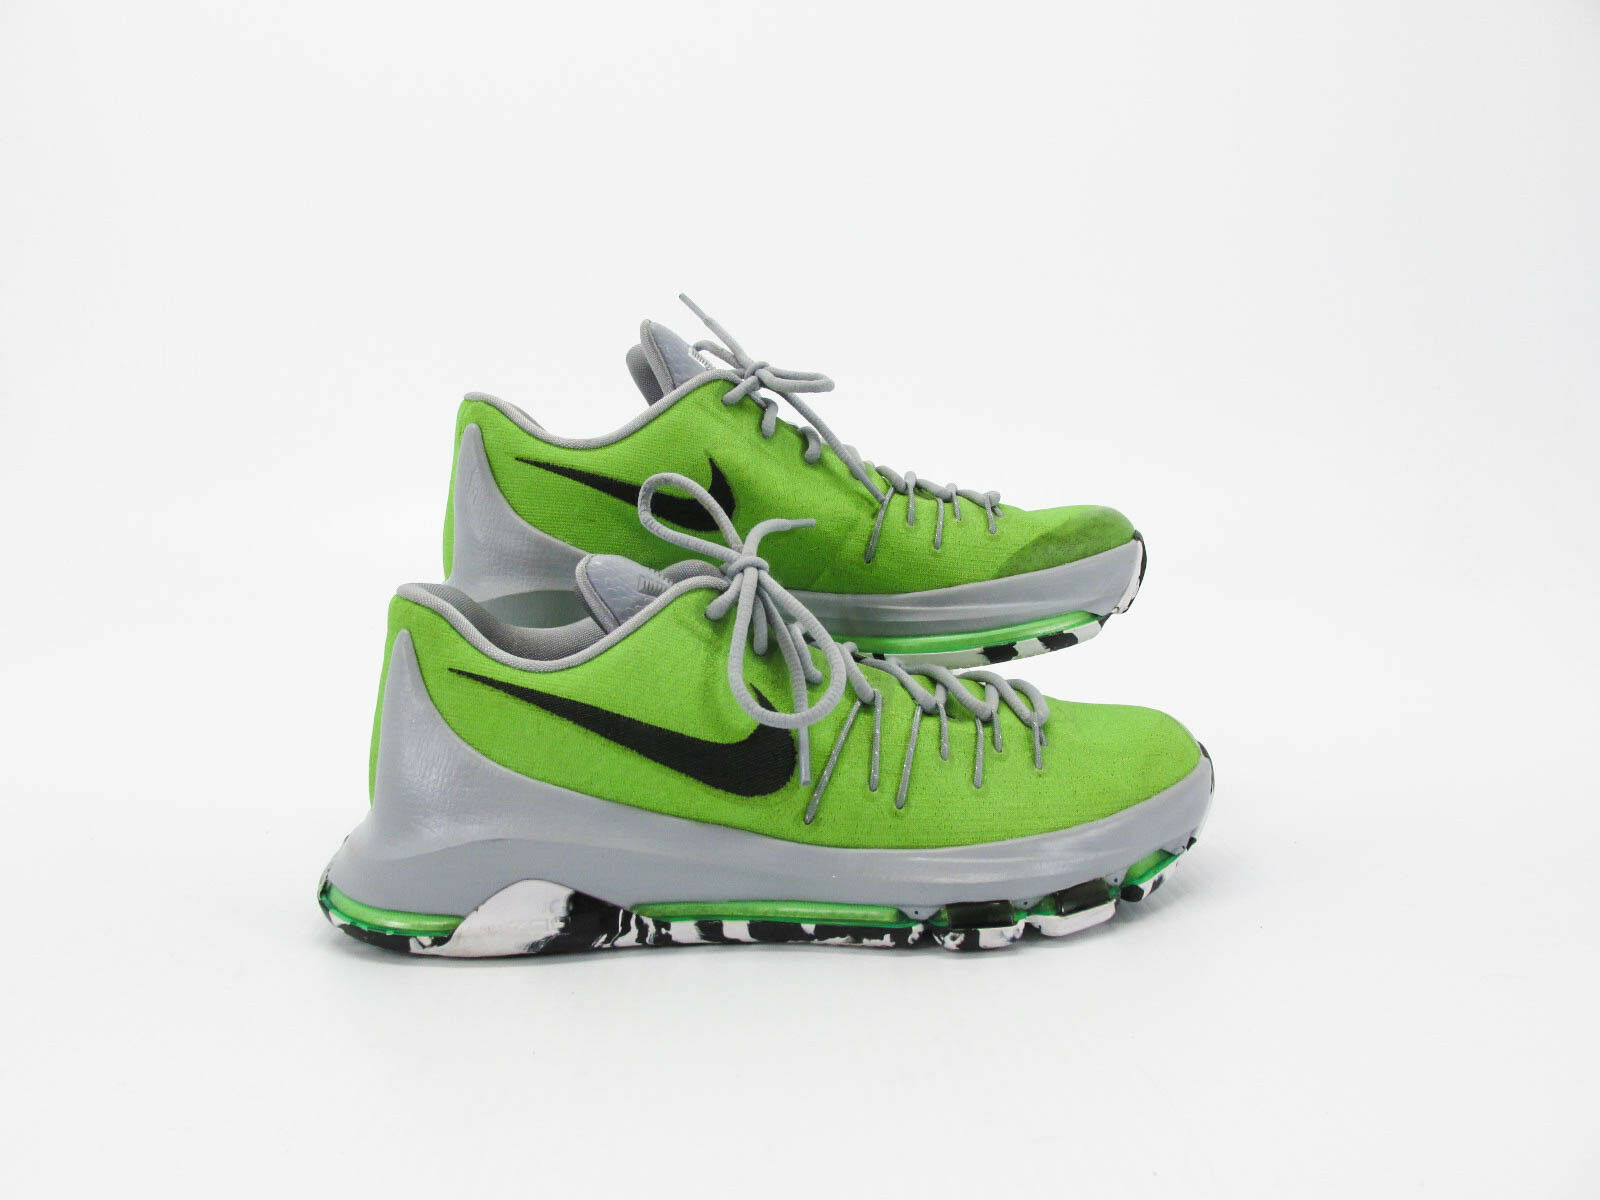 Nike Zoom KD Sample Men Green Athletic Training shoes Size 9M NWOB NQ